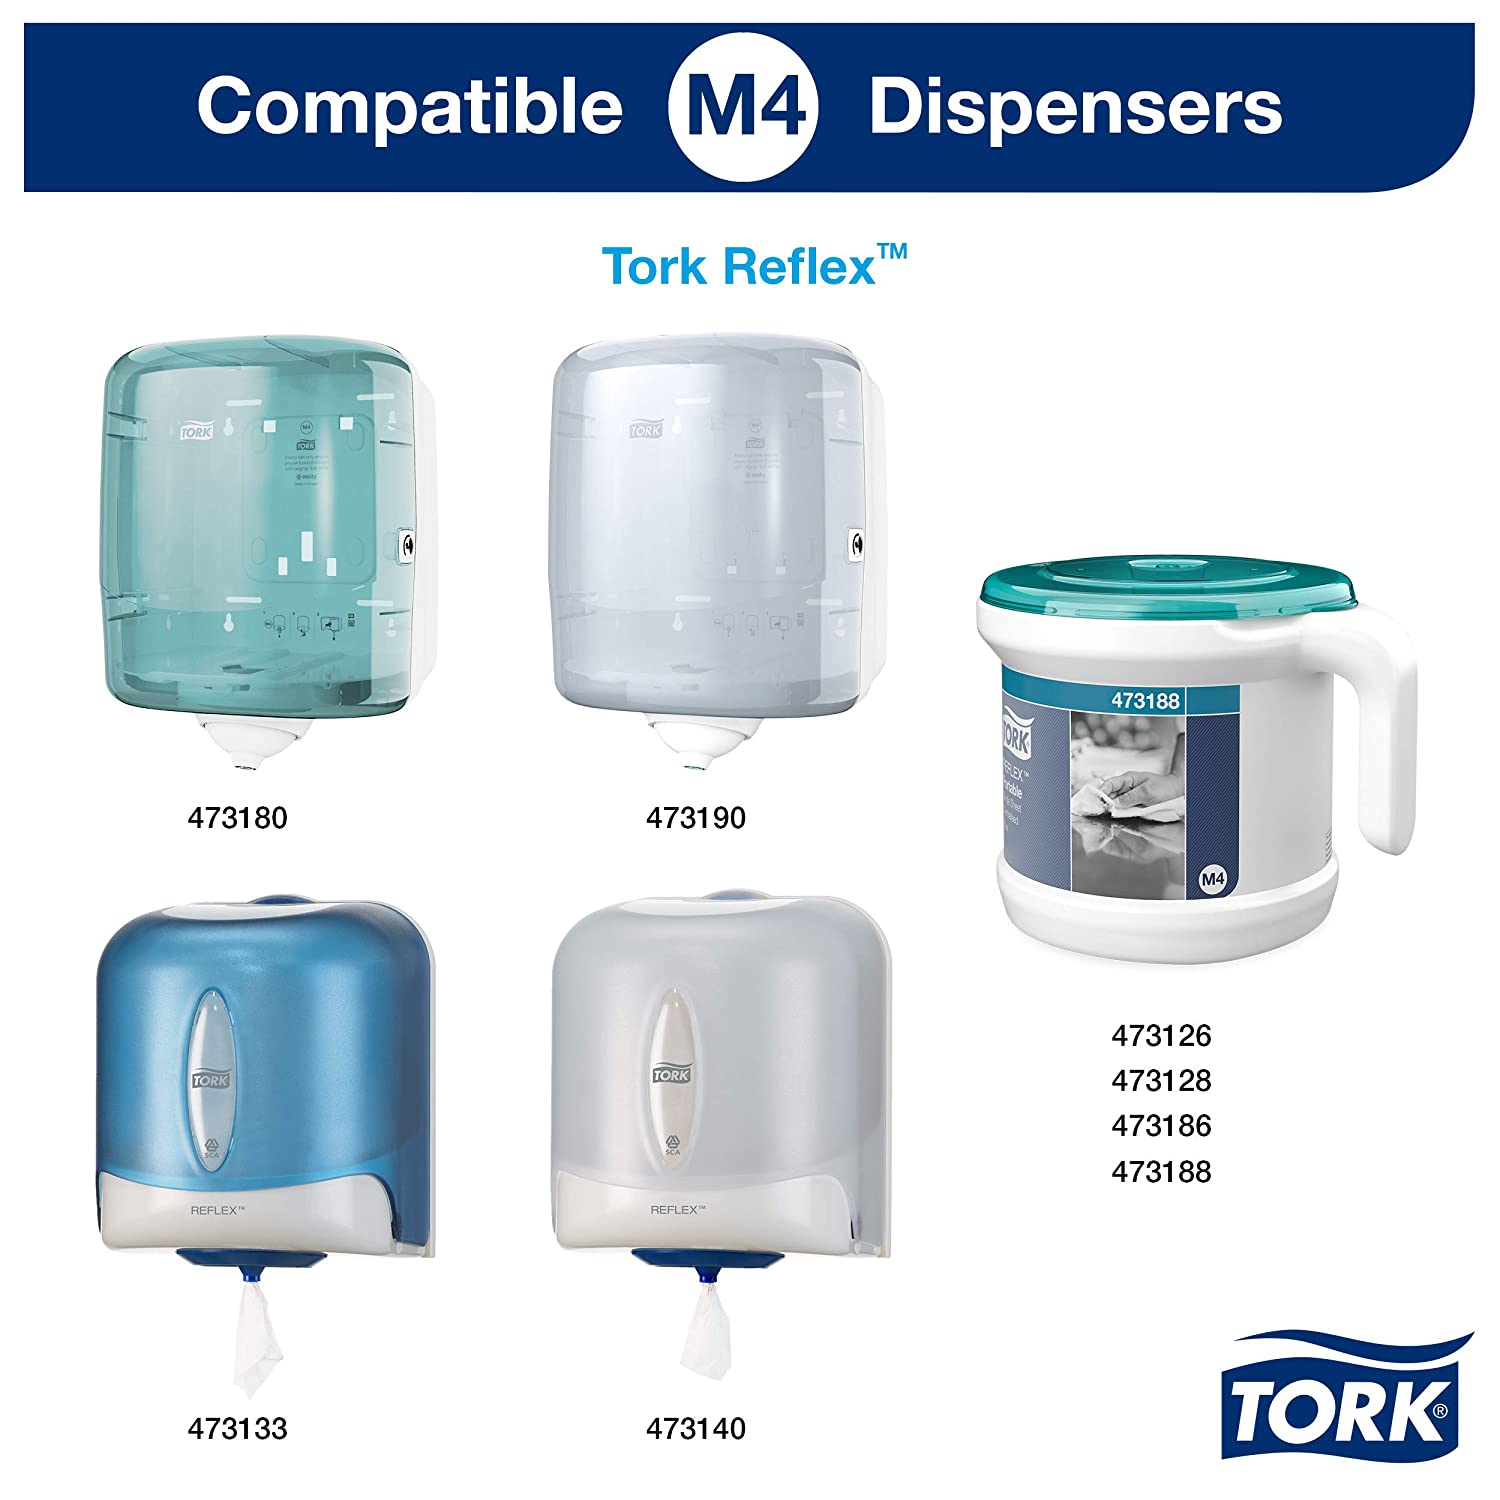 Tork 473391 Reflex Papel de secado Extra/Advanced/ 2 capas/Papel multiuso compatible con el sistema M4 / 6 bobinas x 150,8 m de largo/color azul: Amazon.es: ...